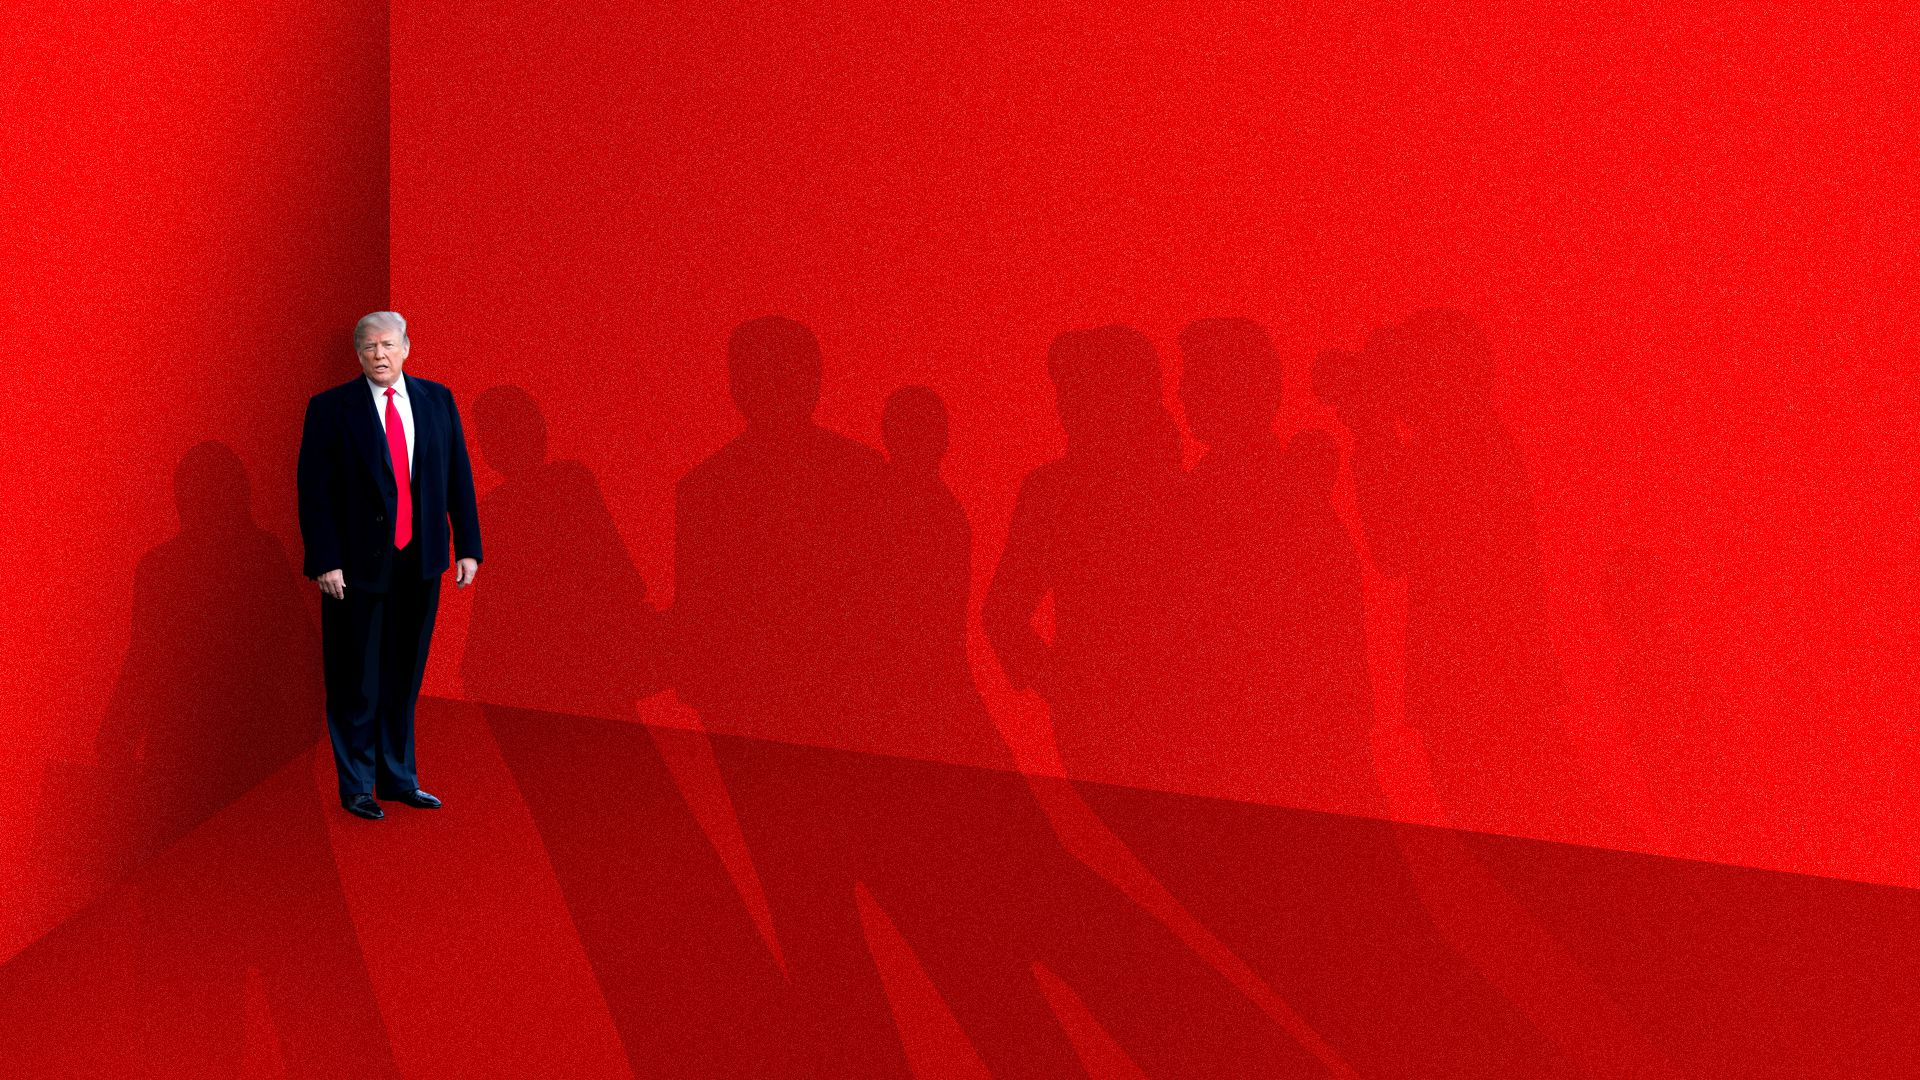 Illustration of President Trump in a corner with tall shadows of other people looming before him